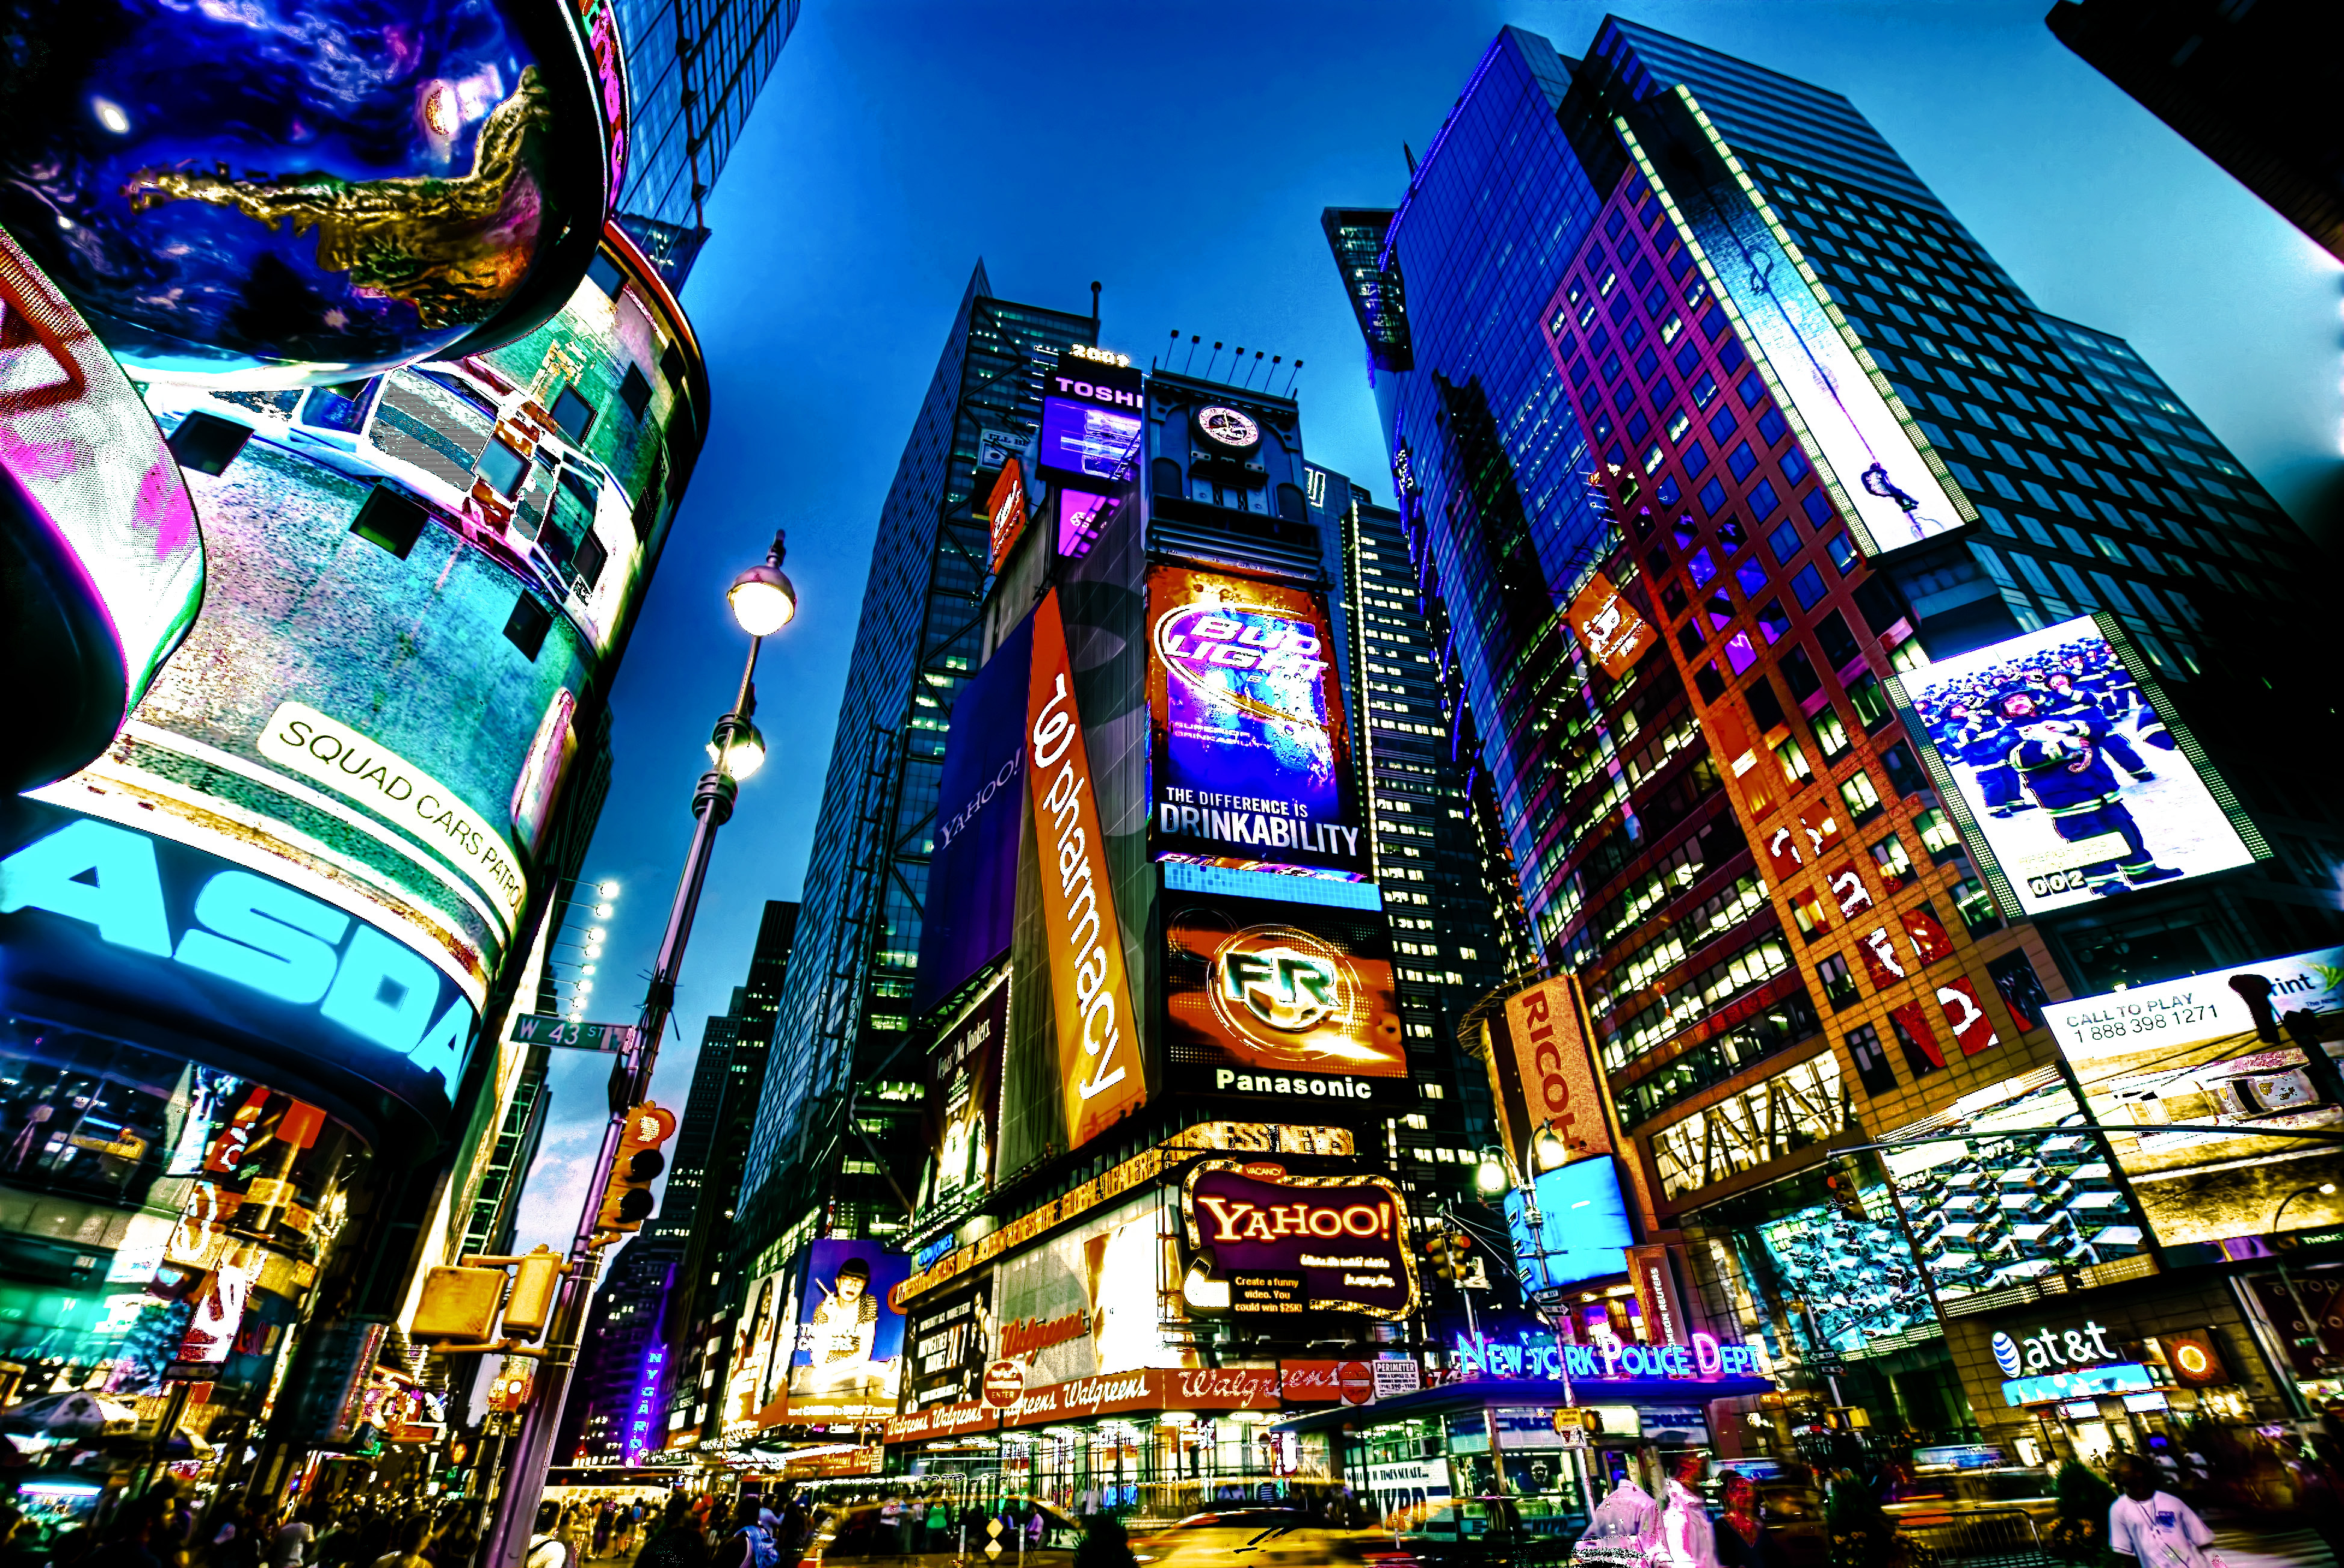 Times Square Images